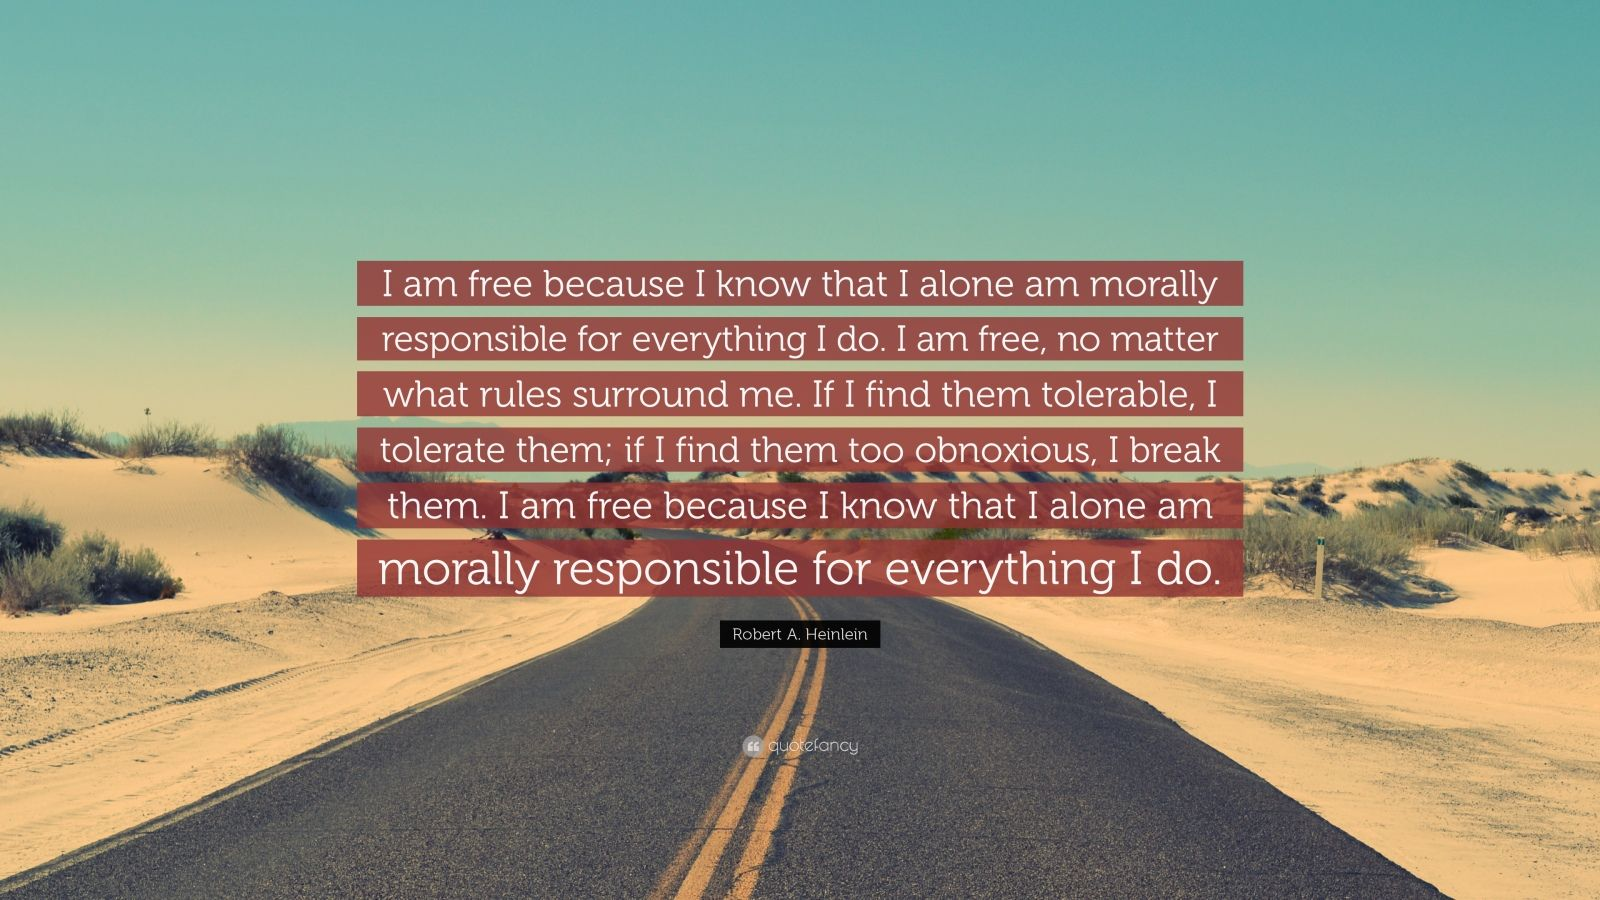 """Robert A. Heinlein Quote: """"I am free because I know that I alone am morally responsible for everything I do. I am free, no matter what rules surround me. If I find them tolerable, I tolerate them; if I find them too obnoxious, I break them. I am free because I know that I alone am morally responsible for everything I do."""""""